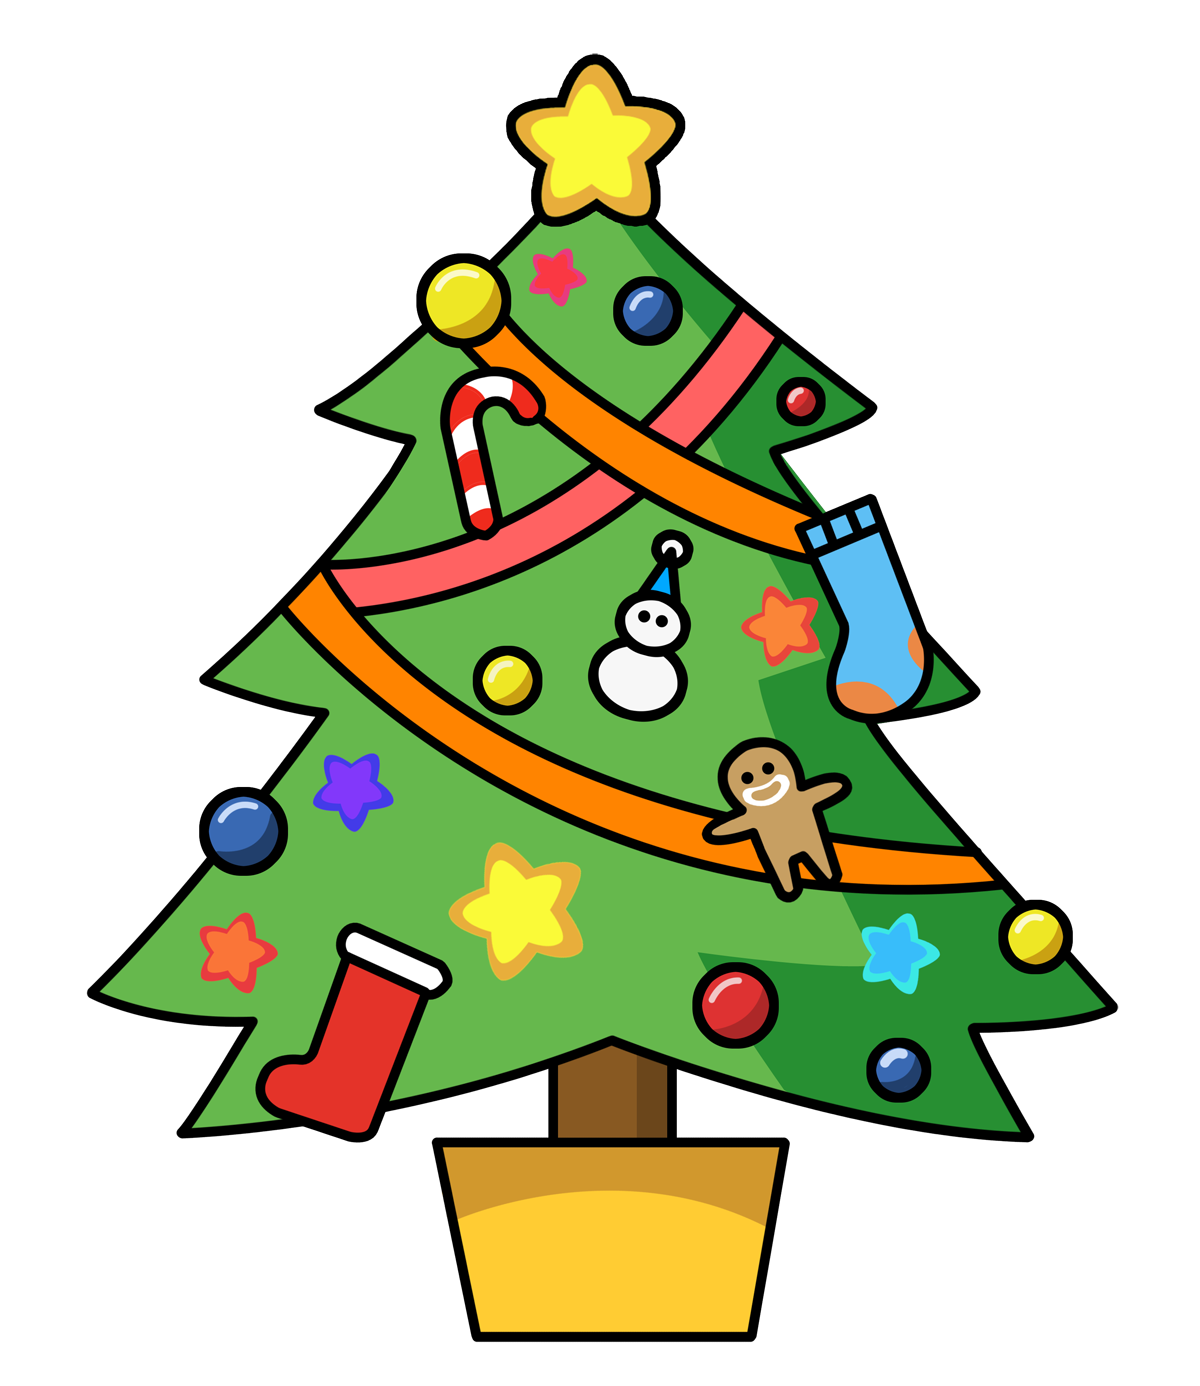 Grinch clipart christmas tree. Crossword high quality design